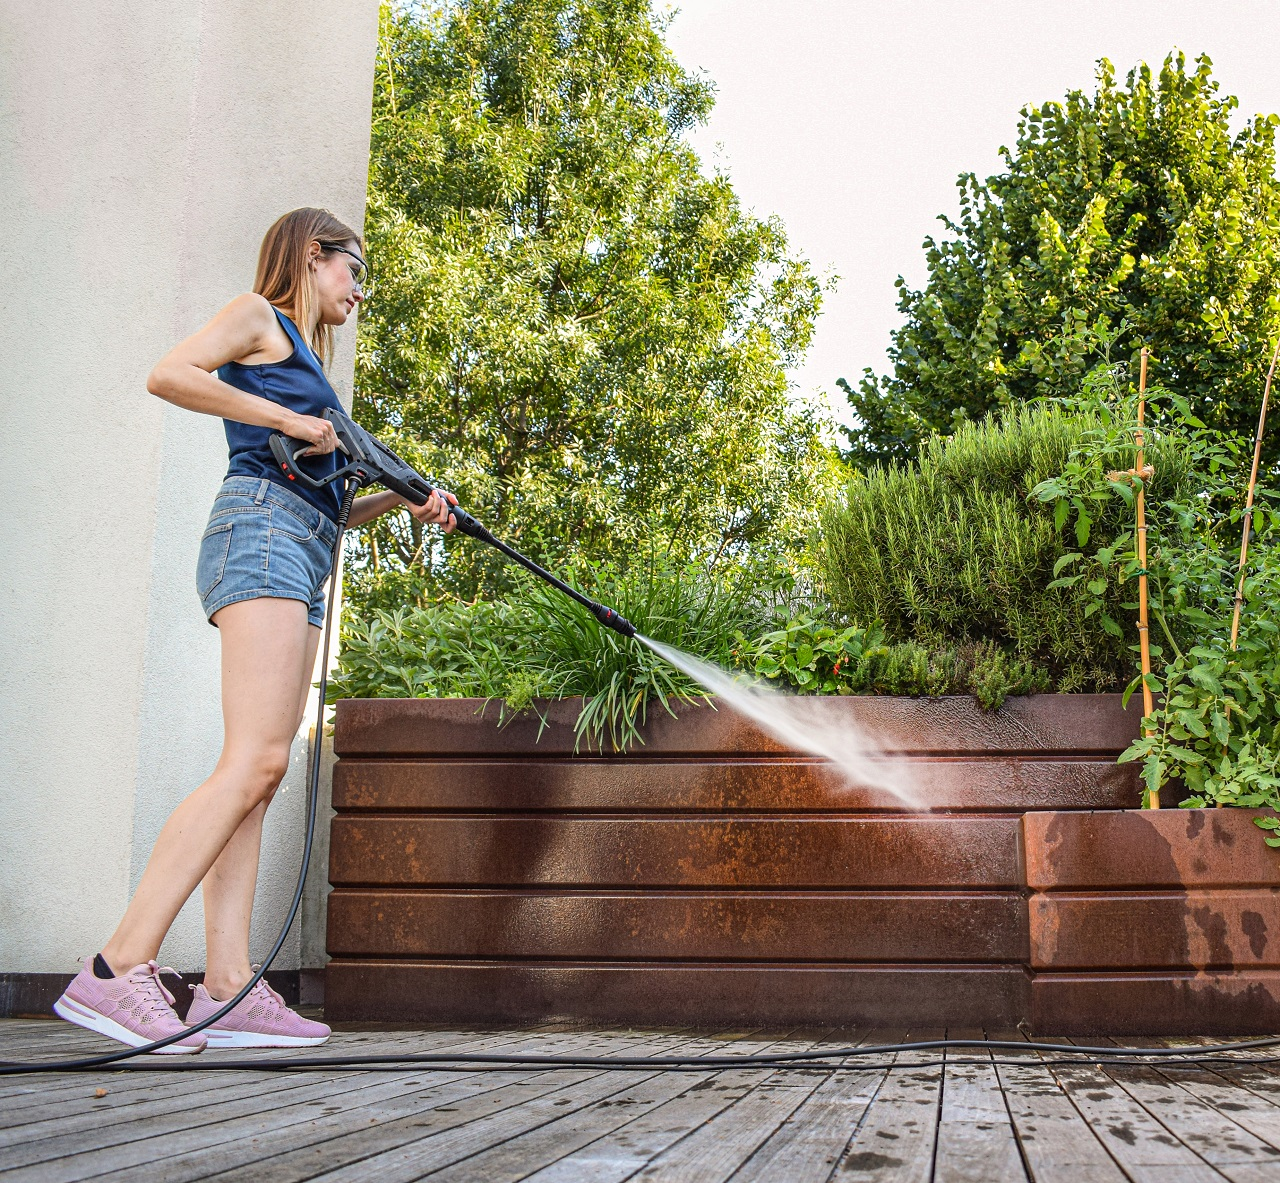 HOW TO CHOOSE YOUR PRESSURE WASHER: ALL YOU NEED TO KNOW